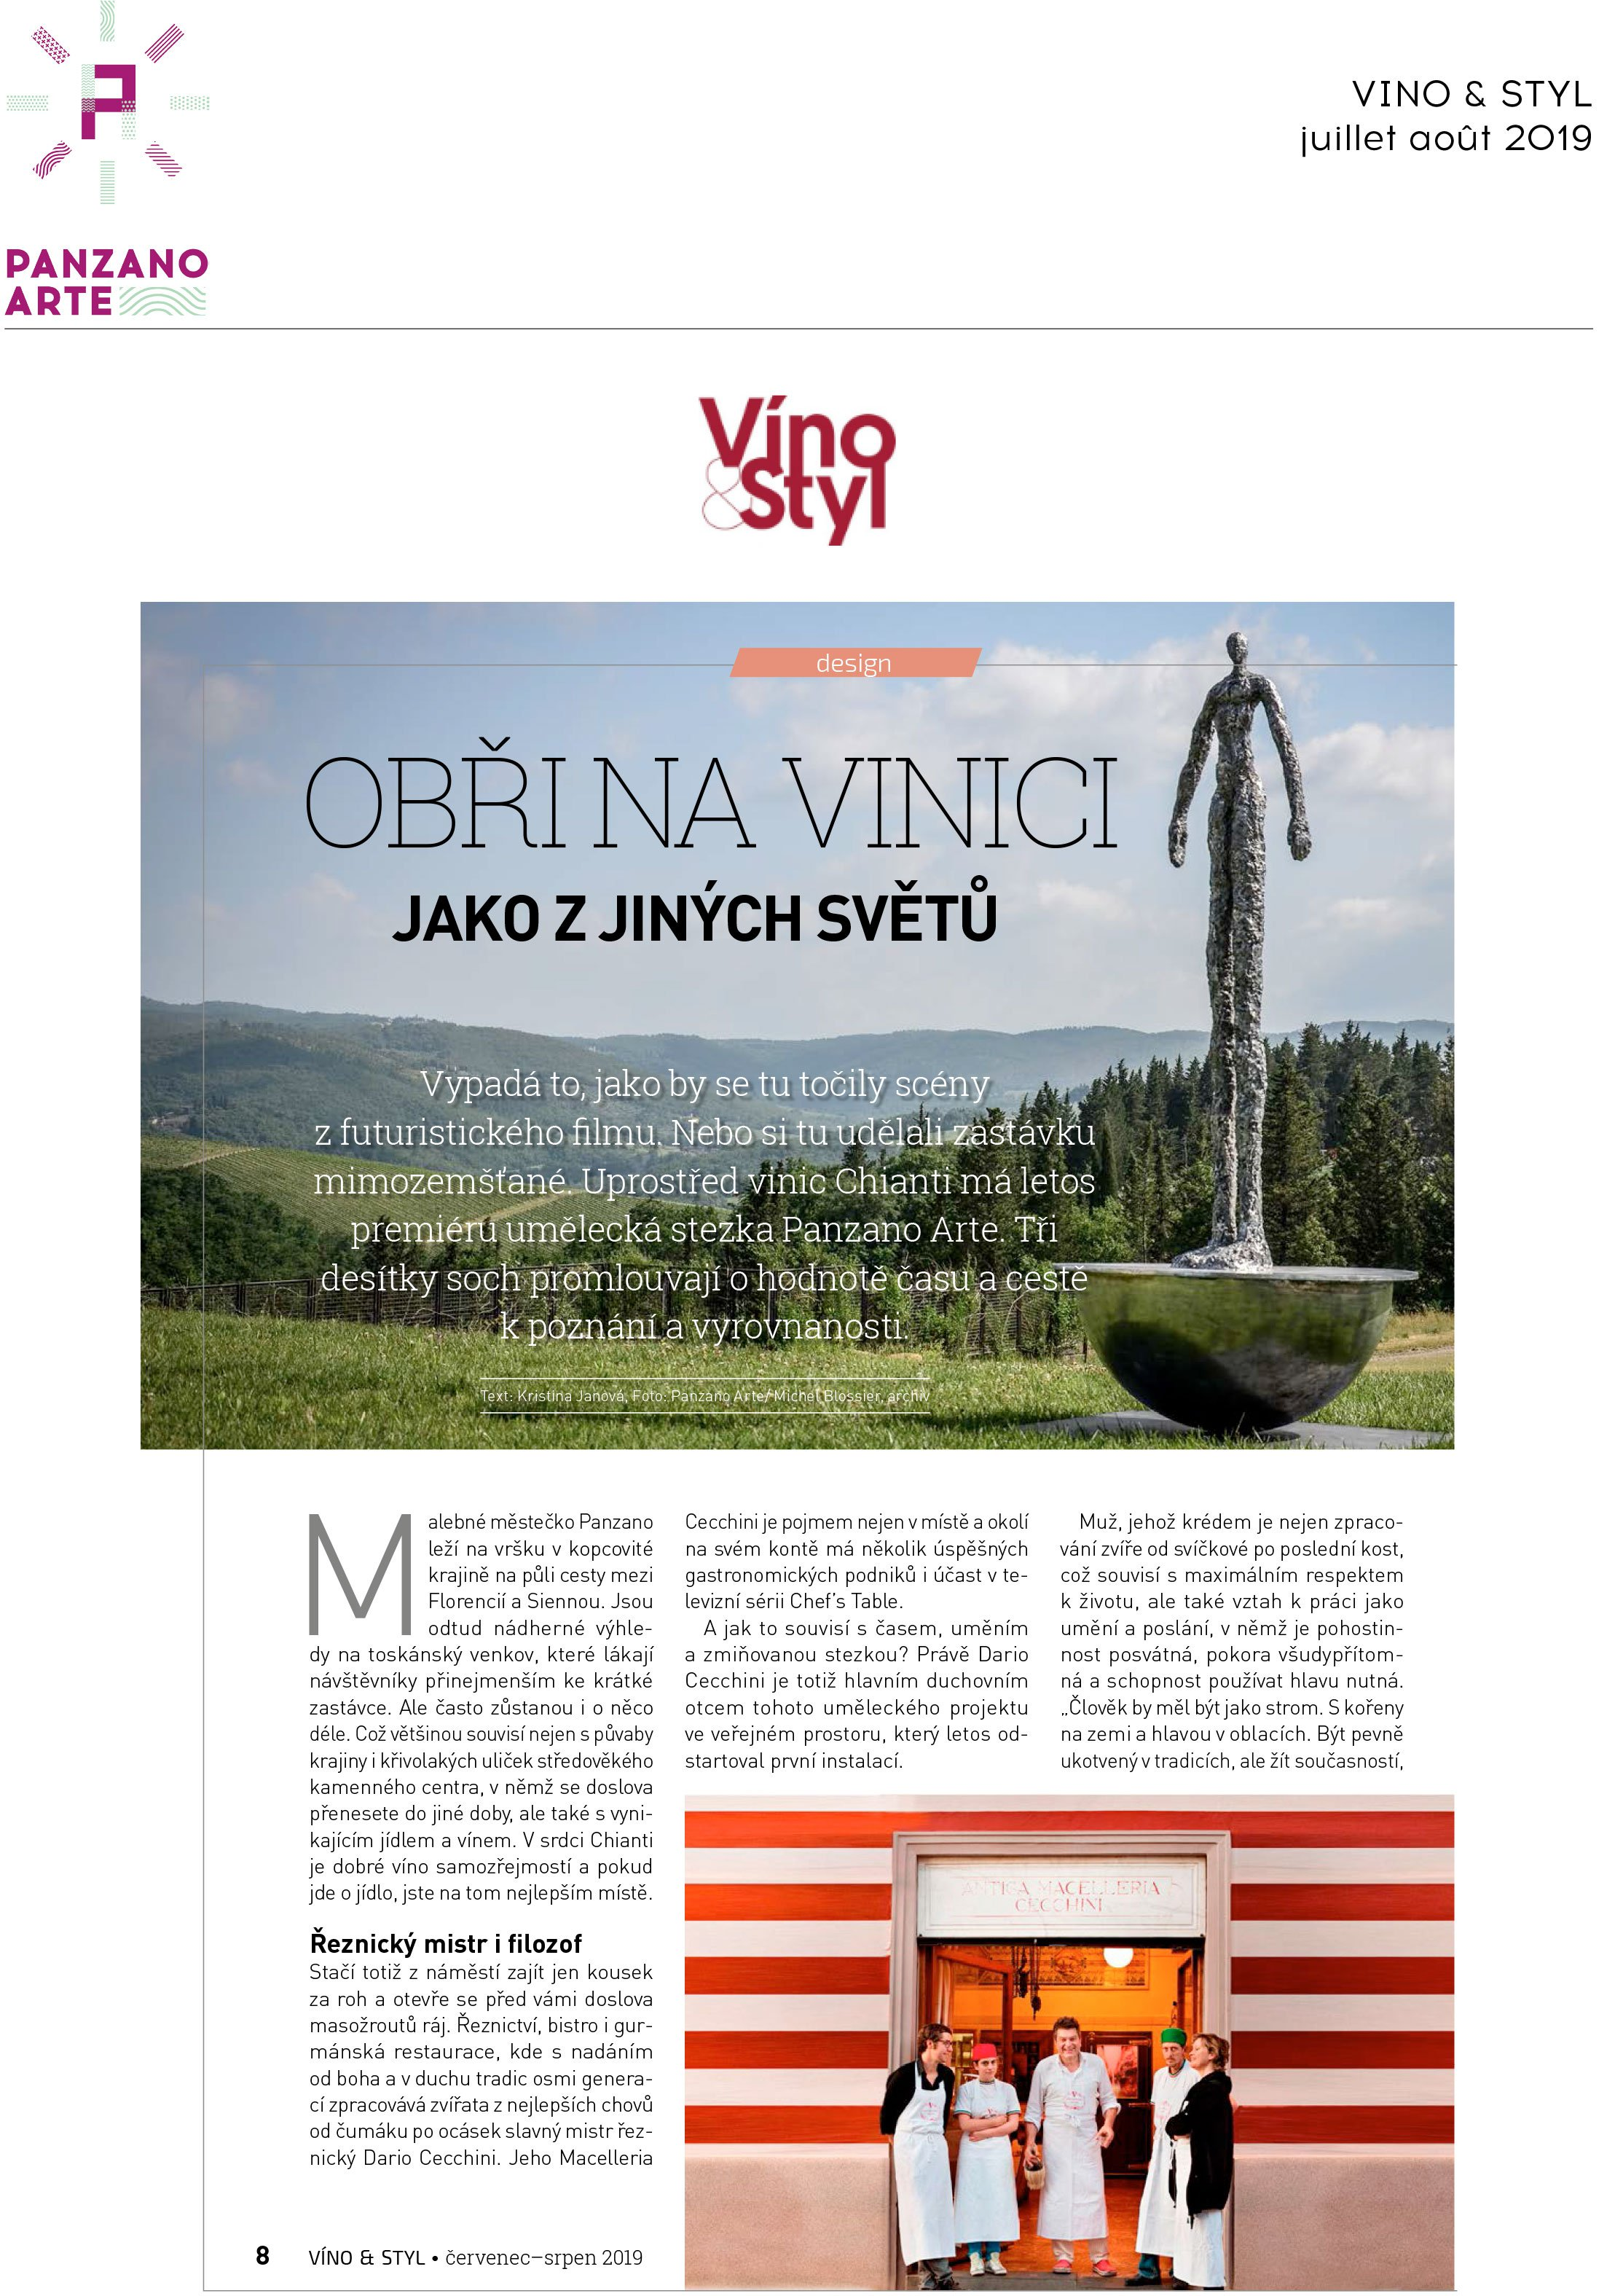 Vino&Styl<br>July/August 2019